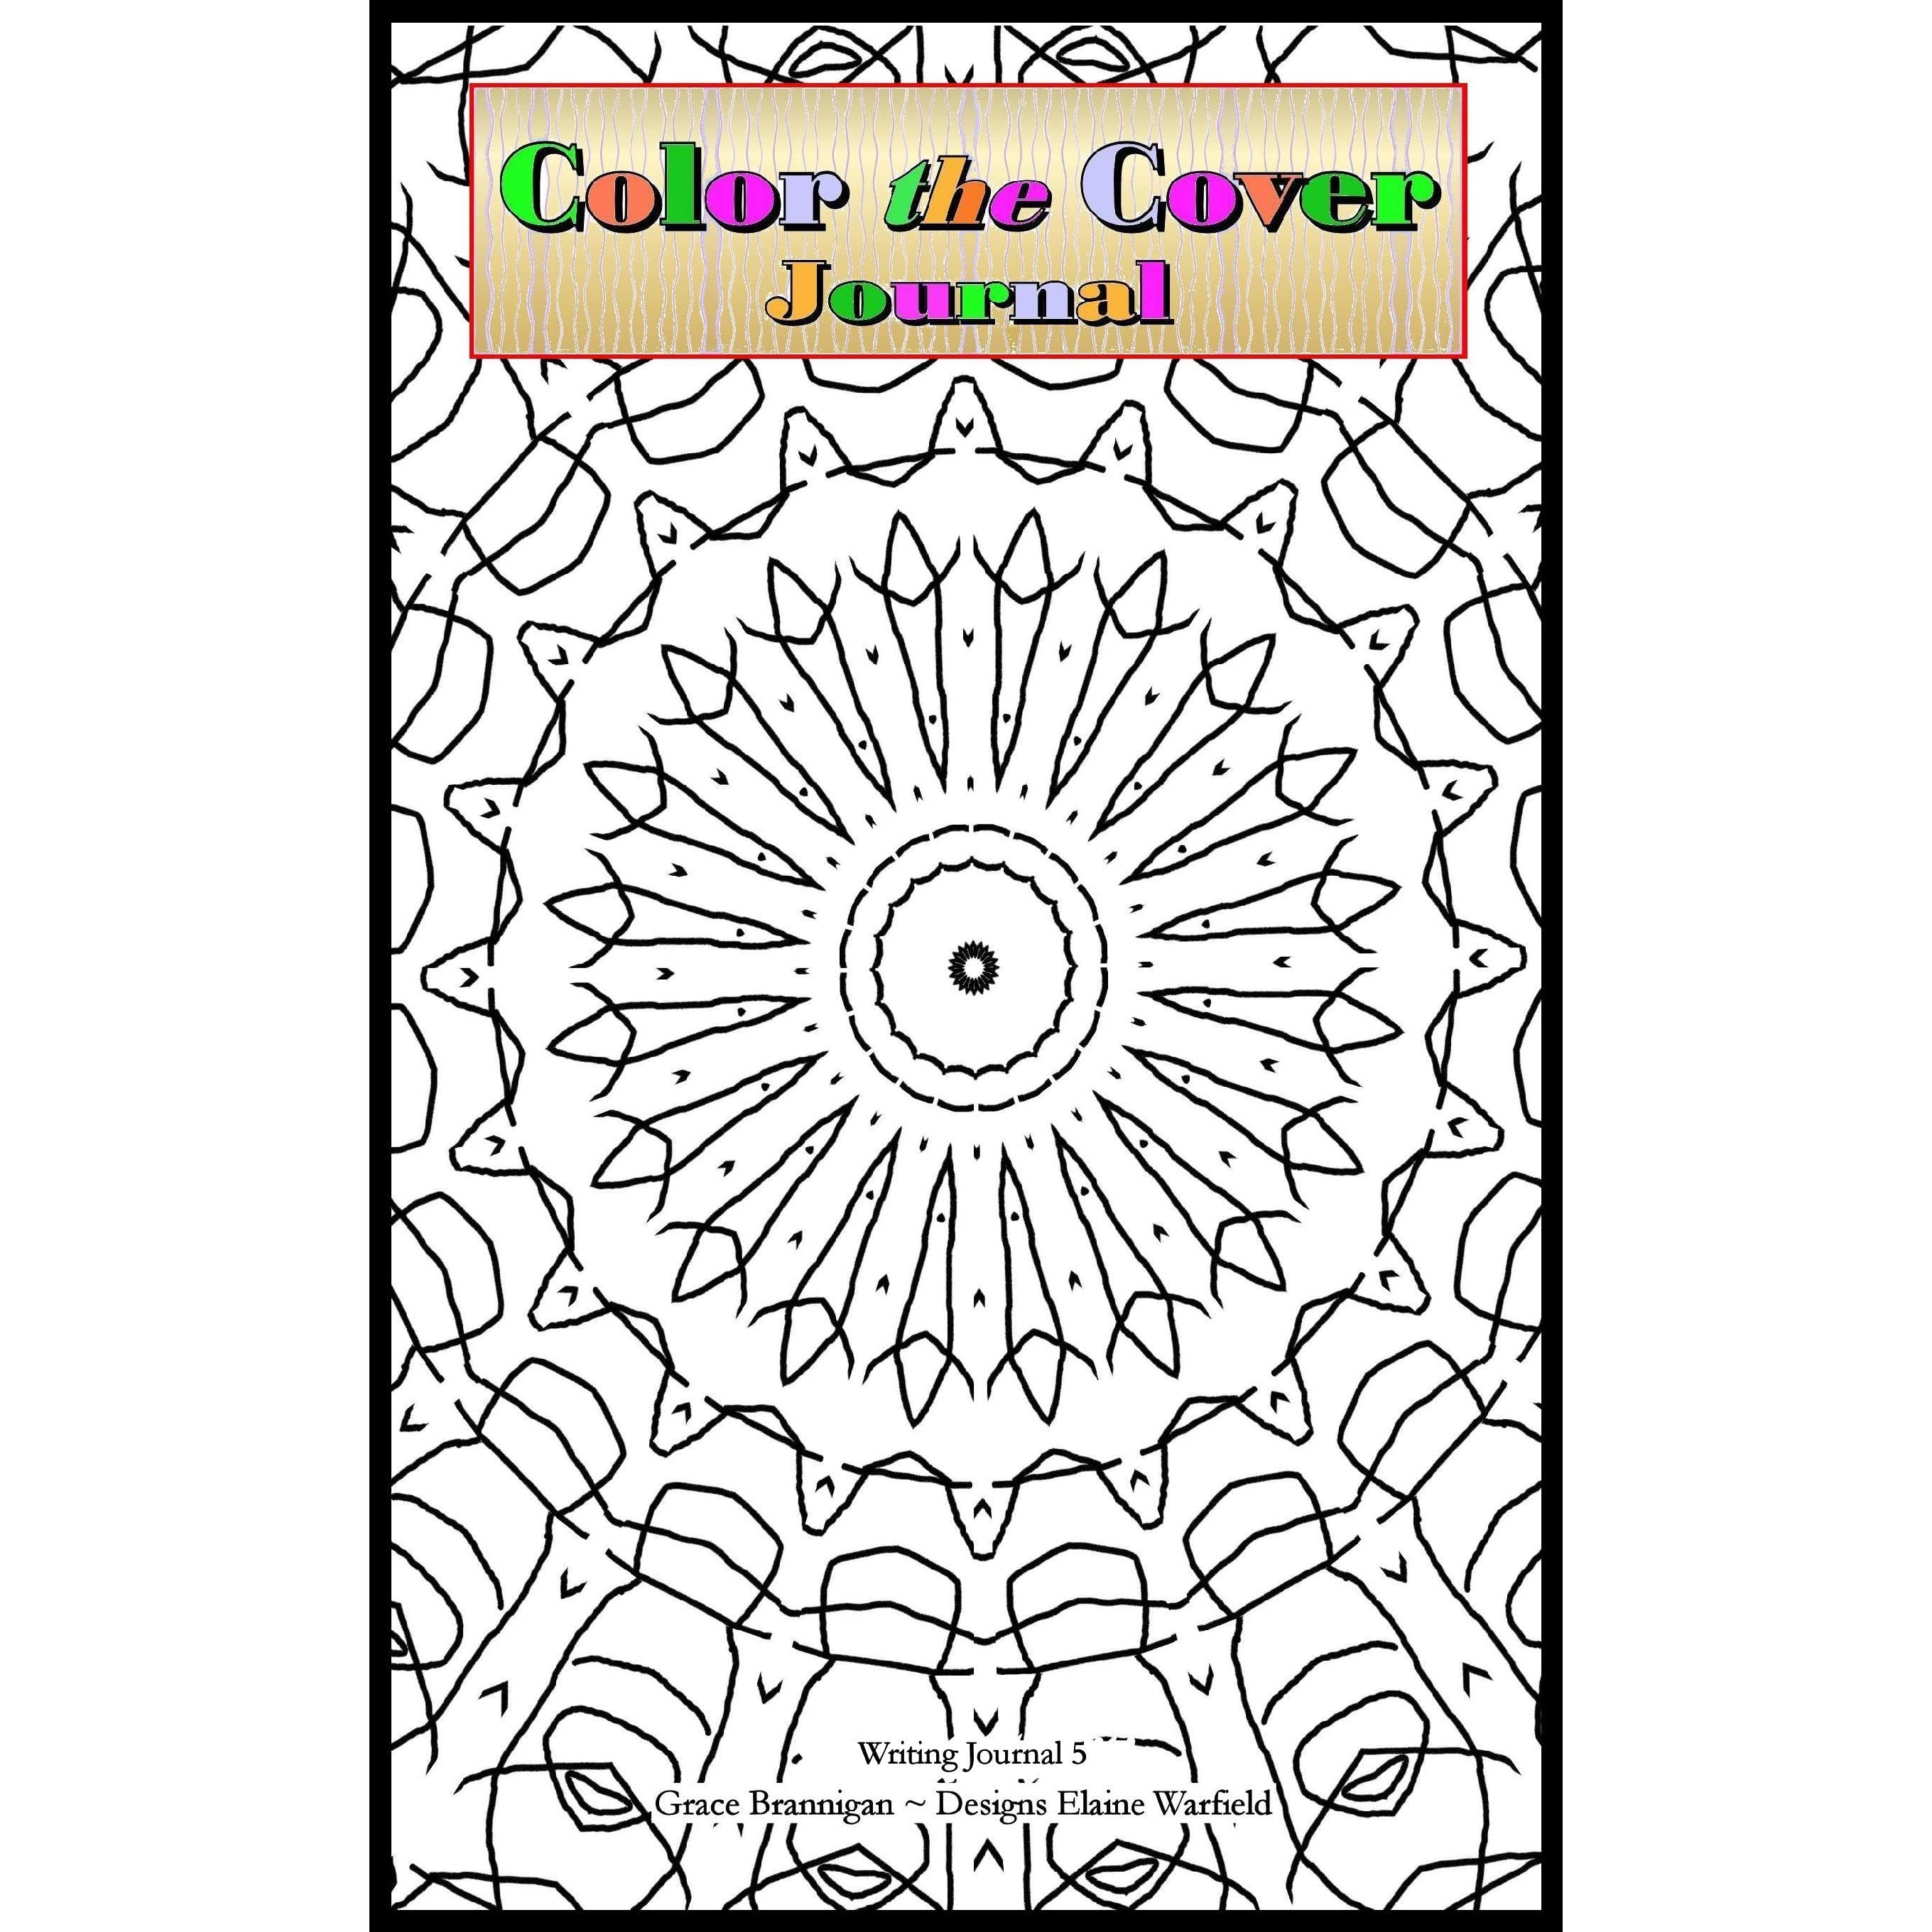 color the cover journal: writing journal 5 by grace brannigan